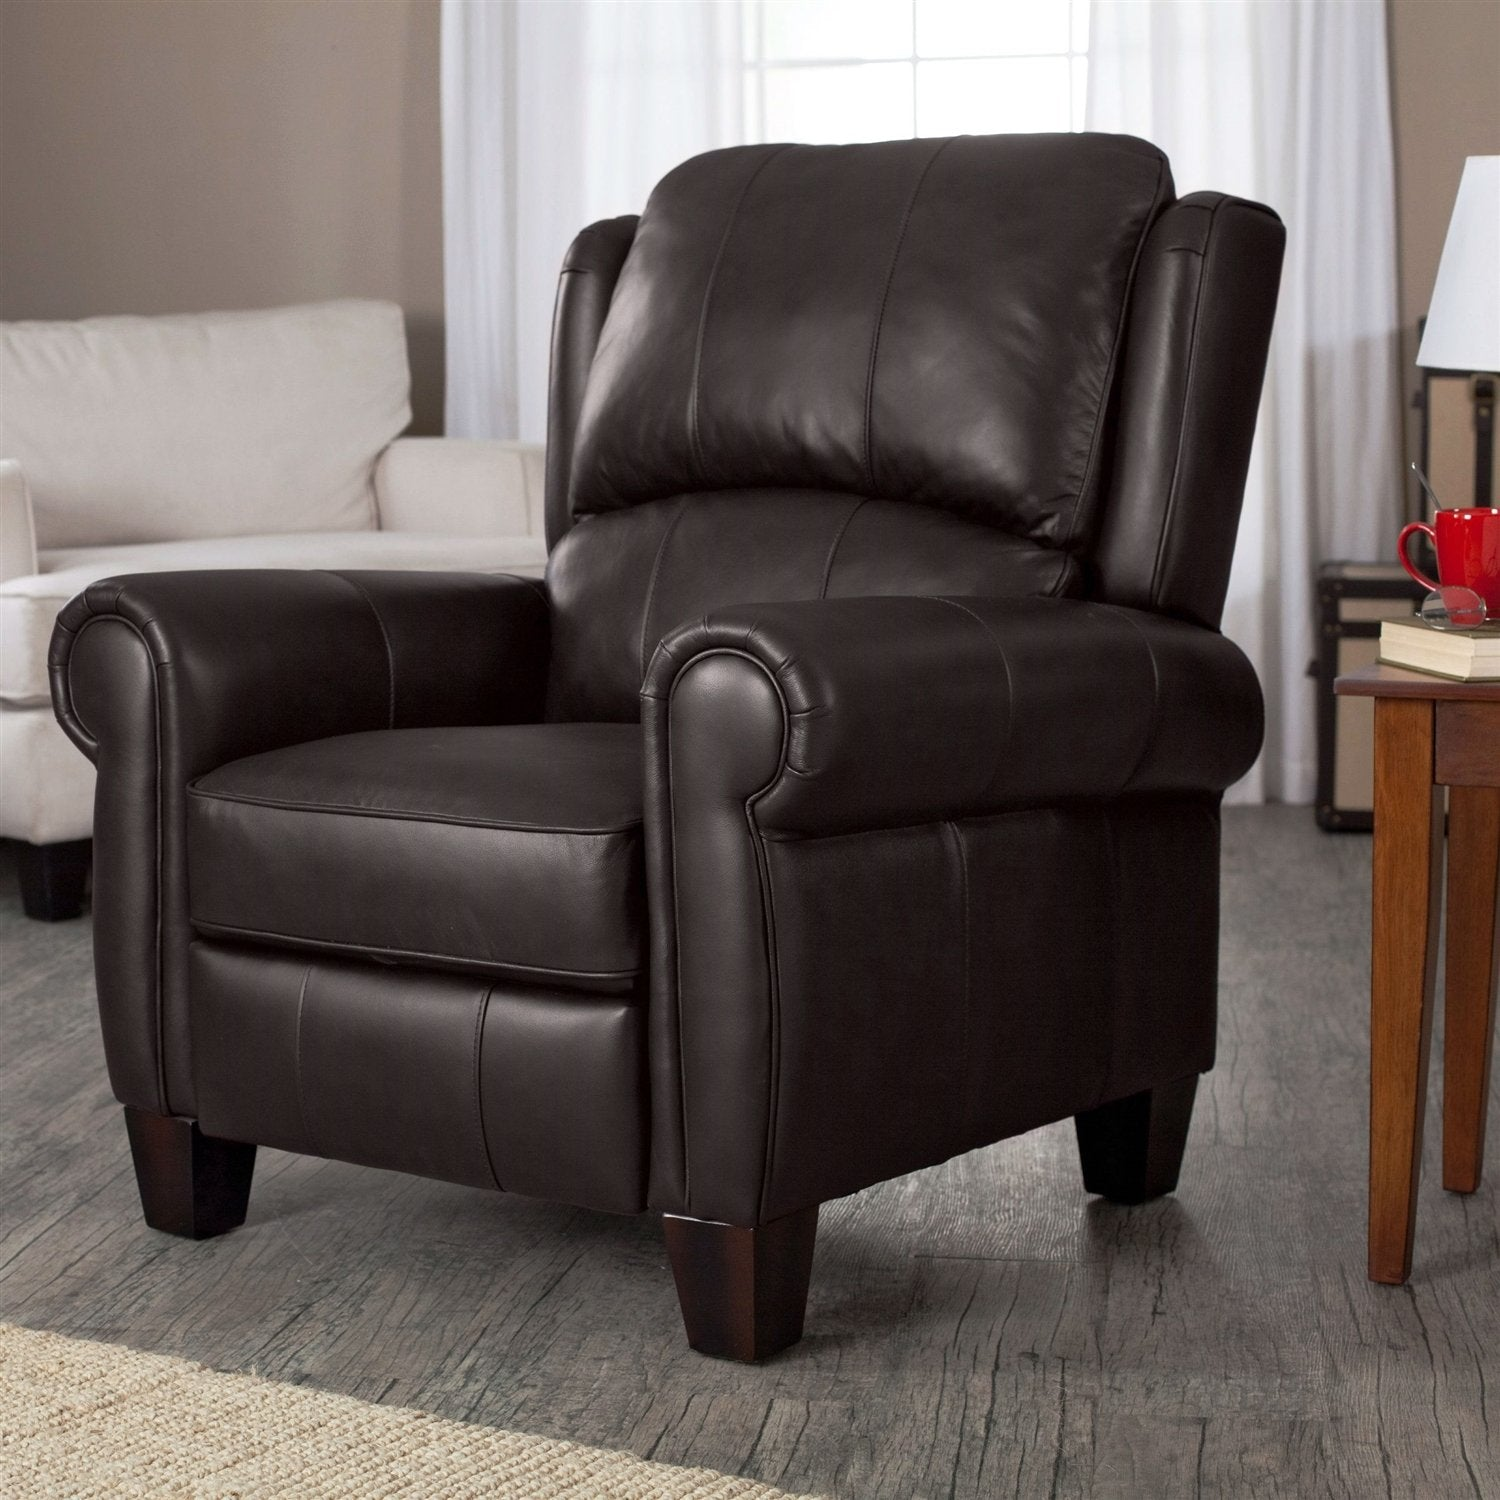 High Quality Top Grain Leather Upholstered Wingback Recliner Club Chair in Chocolate Brown & Recliners and Leather Recliner islam-shia.org